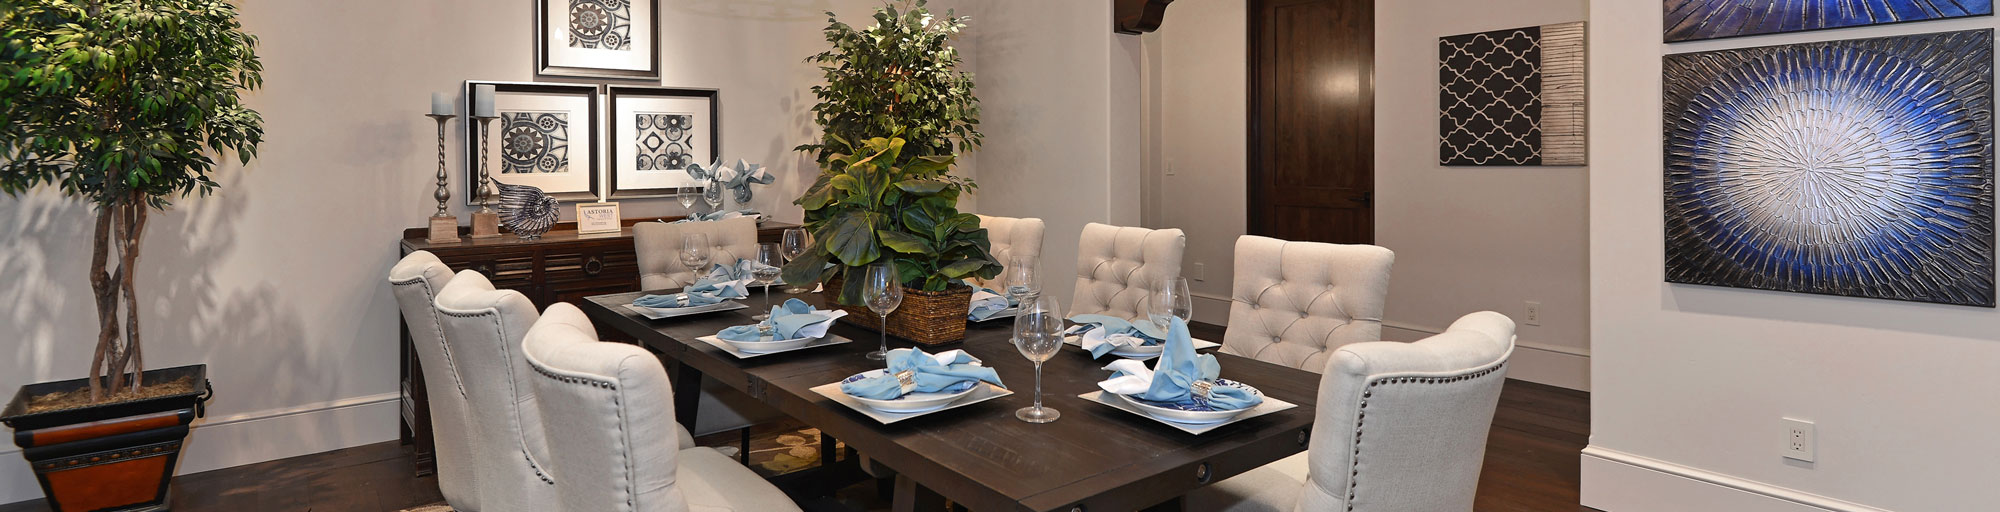 White and blue toned staging of dining room